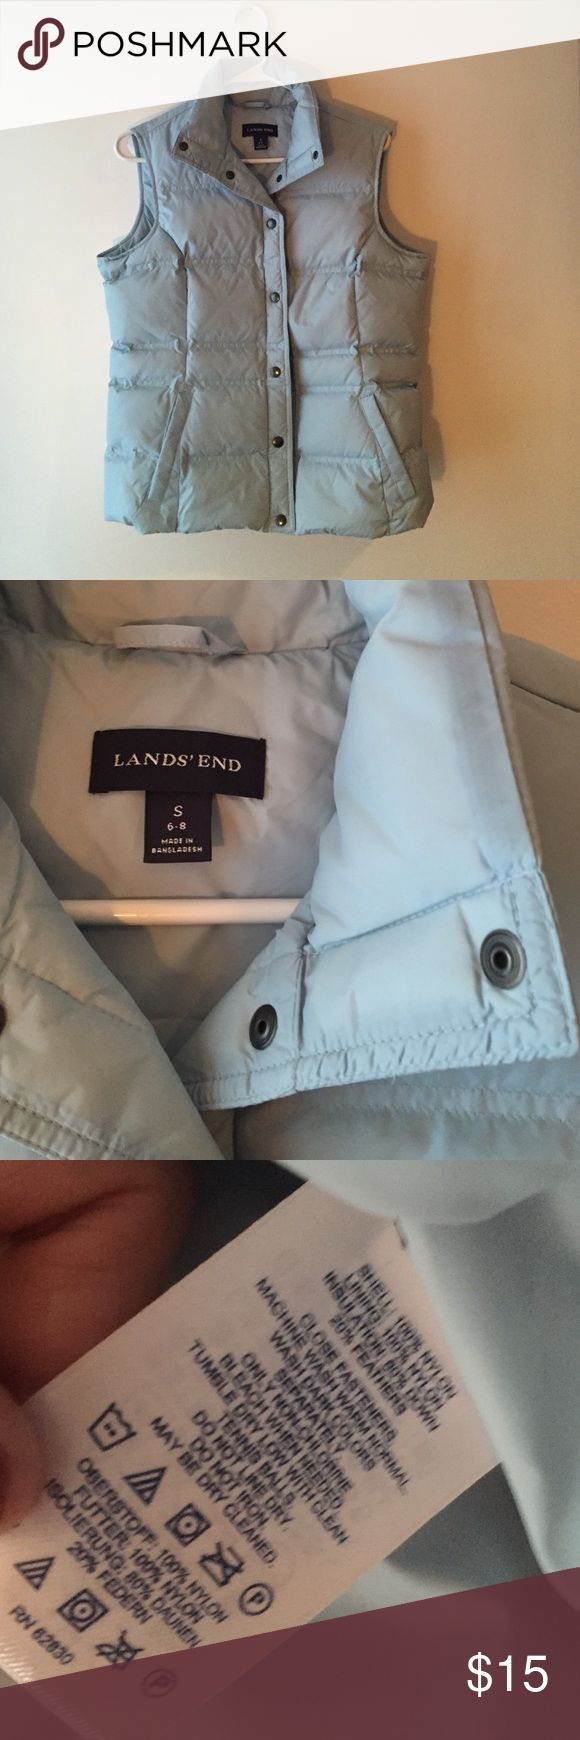 1 day sale! Lands End puffer vest ⛄️ EUC baby blue Lands End puffer best with down filling, so comfy, warm, and light! ⛄️ Lands' End Jackets & Coats Vests